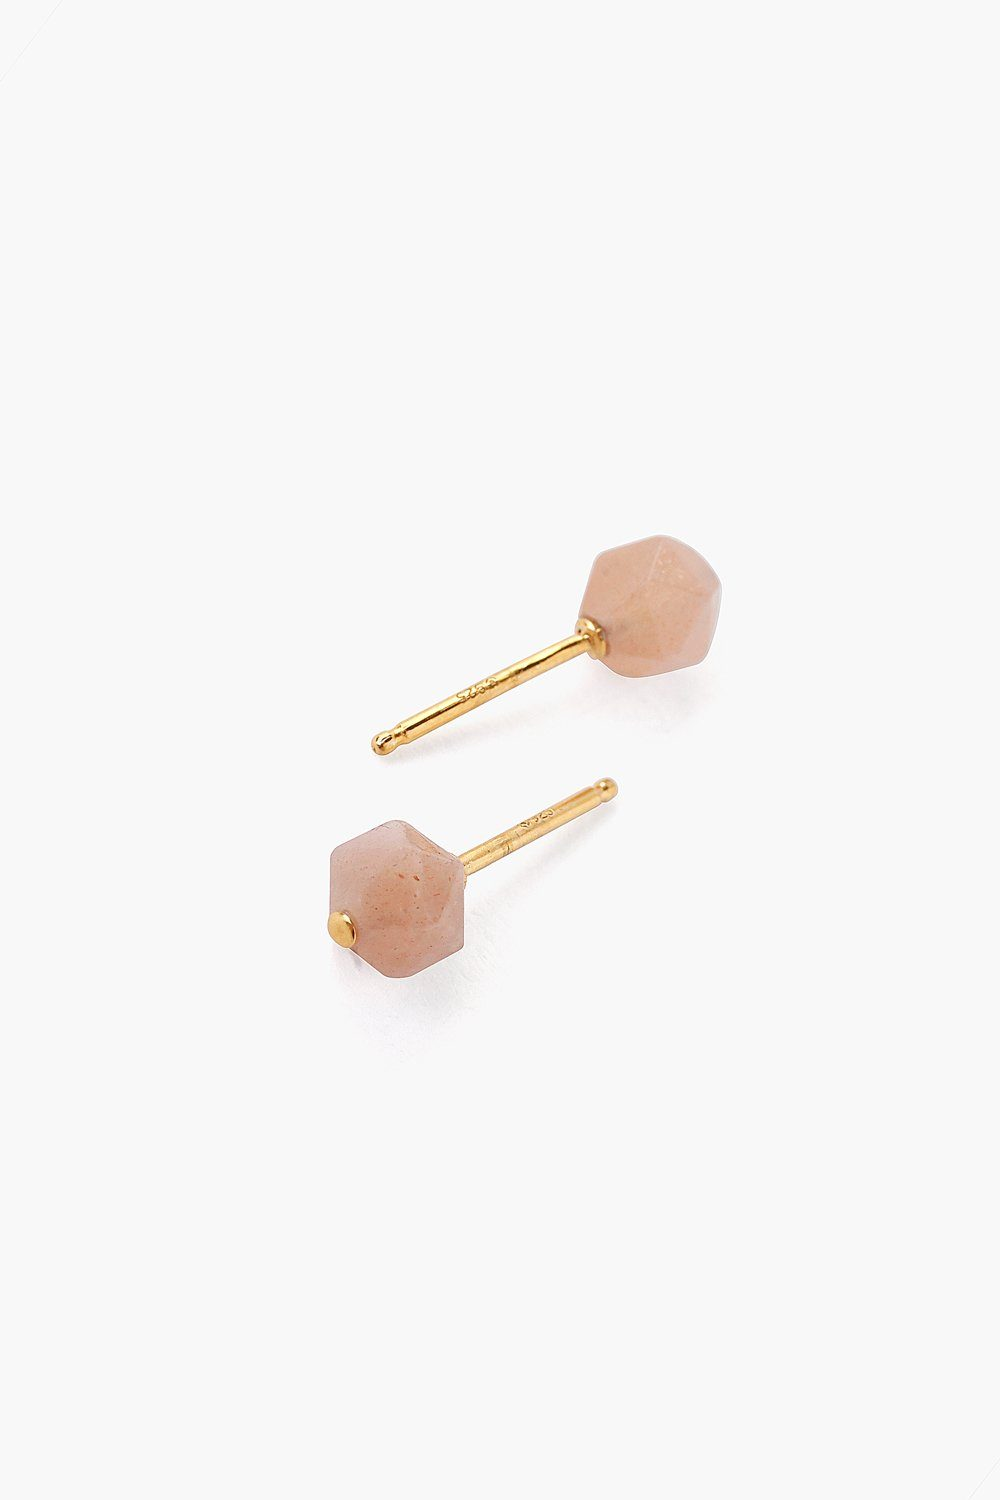 Peach Moonstone Starcut Stud Earrings